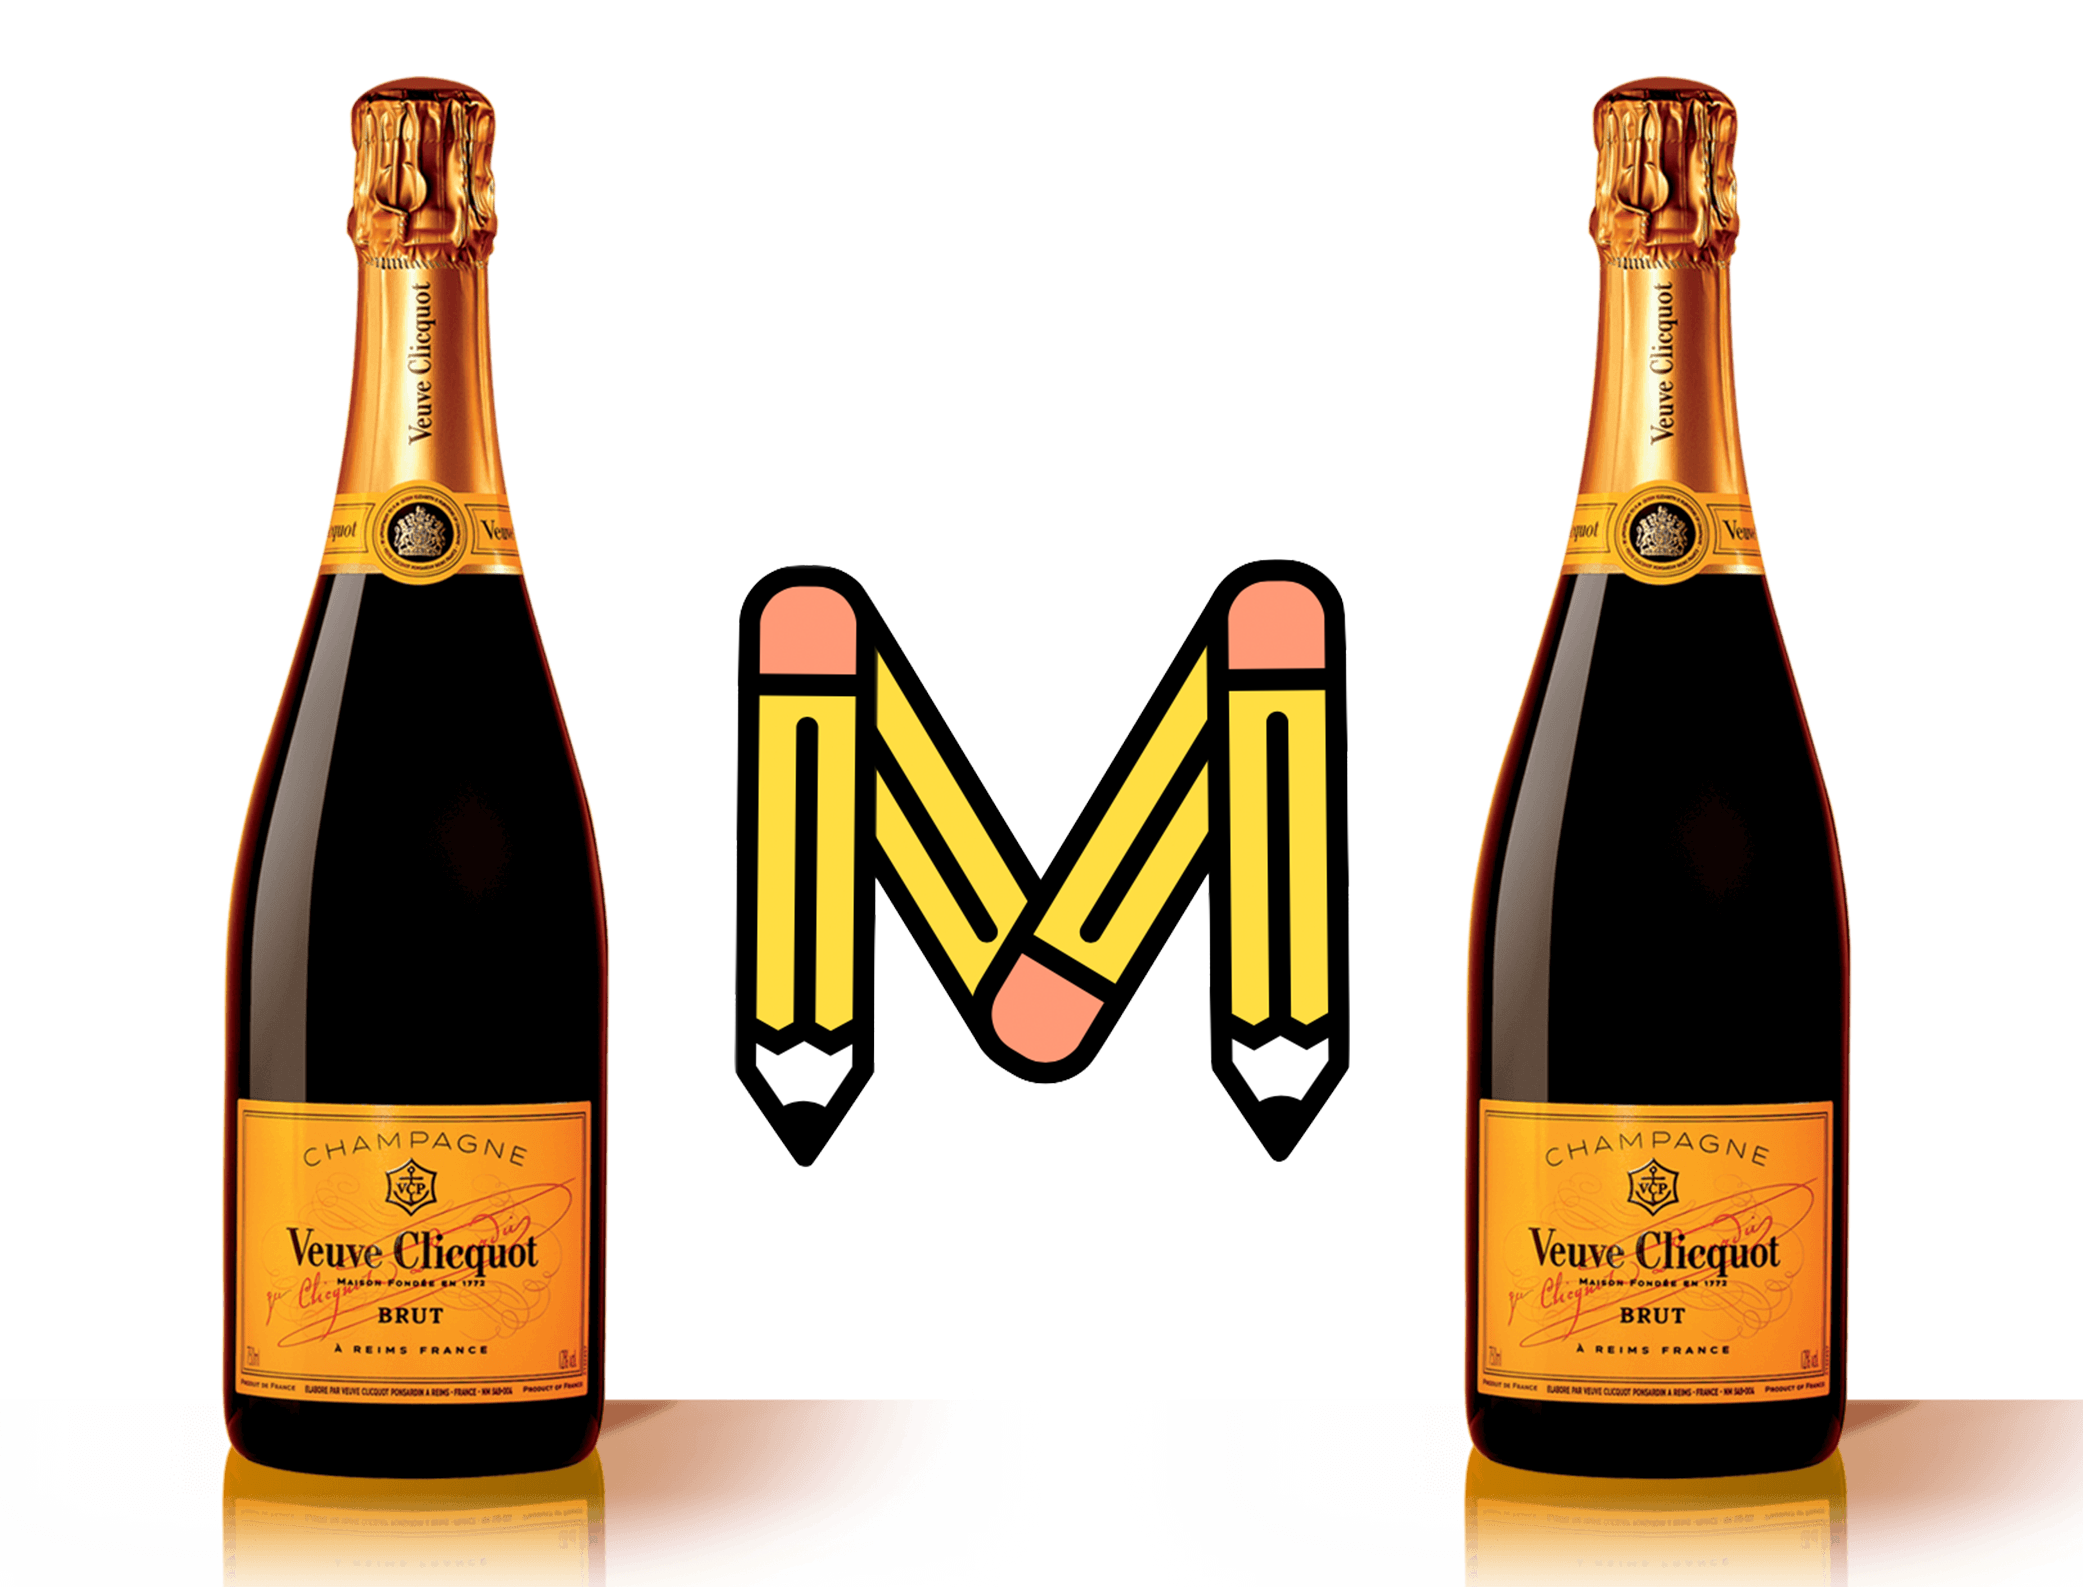 2083x1587 Become A Kyd Member To Win Two Bottles Of Veuve Clicquot Champagne